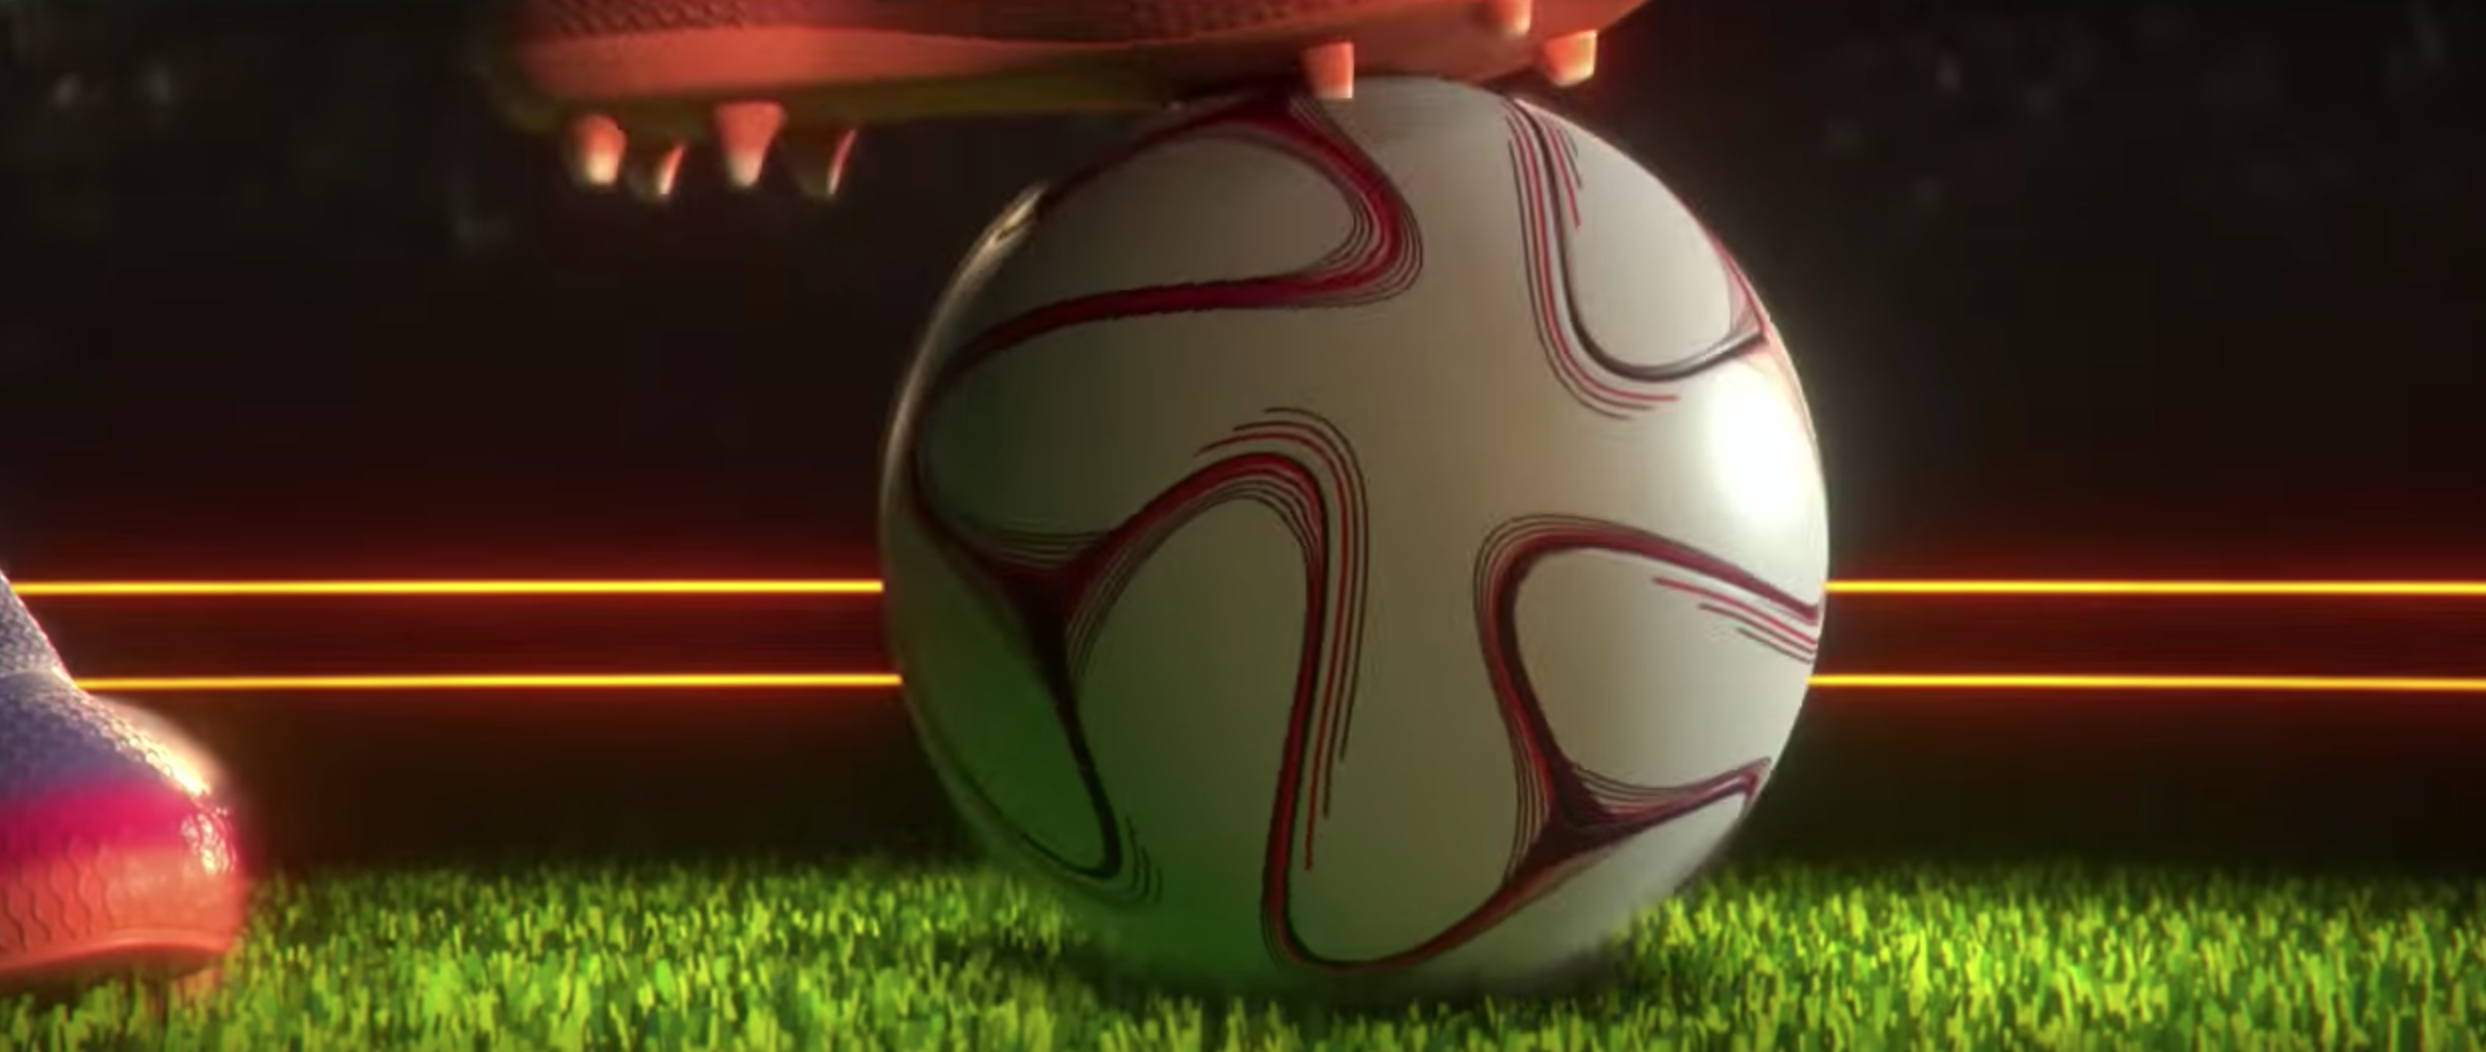 The best branded videos of The World Cup 2018